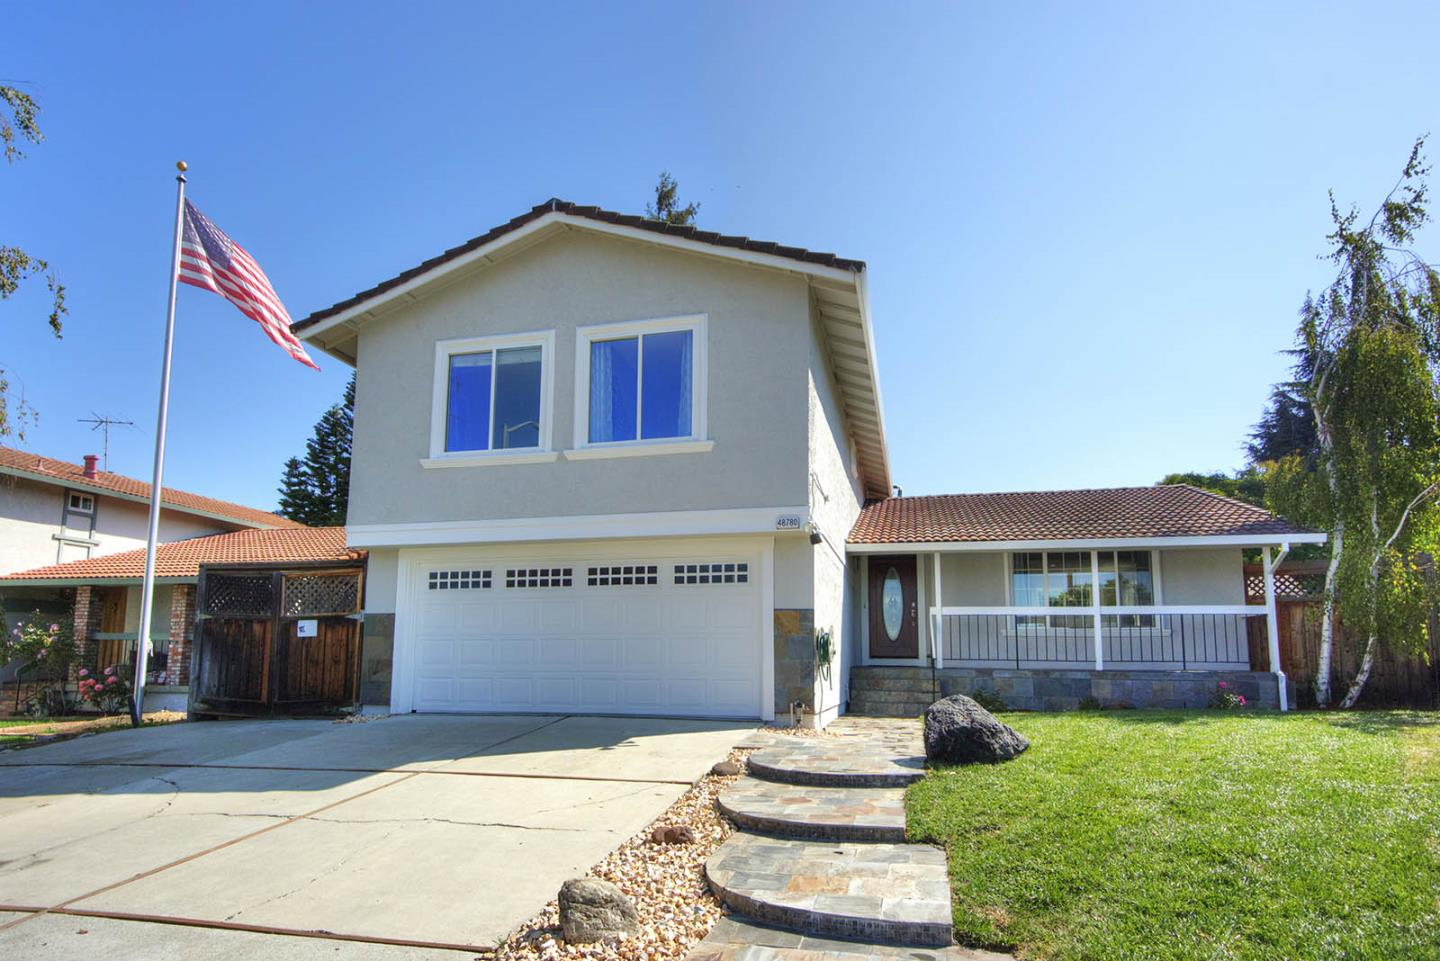 Detail Gallery Image 1 of 1 For 48780 Plomosa Rd, Fremont, CA 94539 - 4 Beds | 2/1 Baths